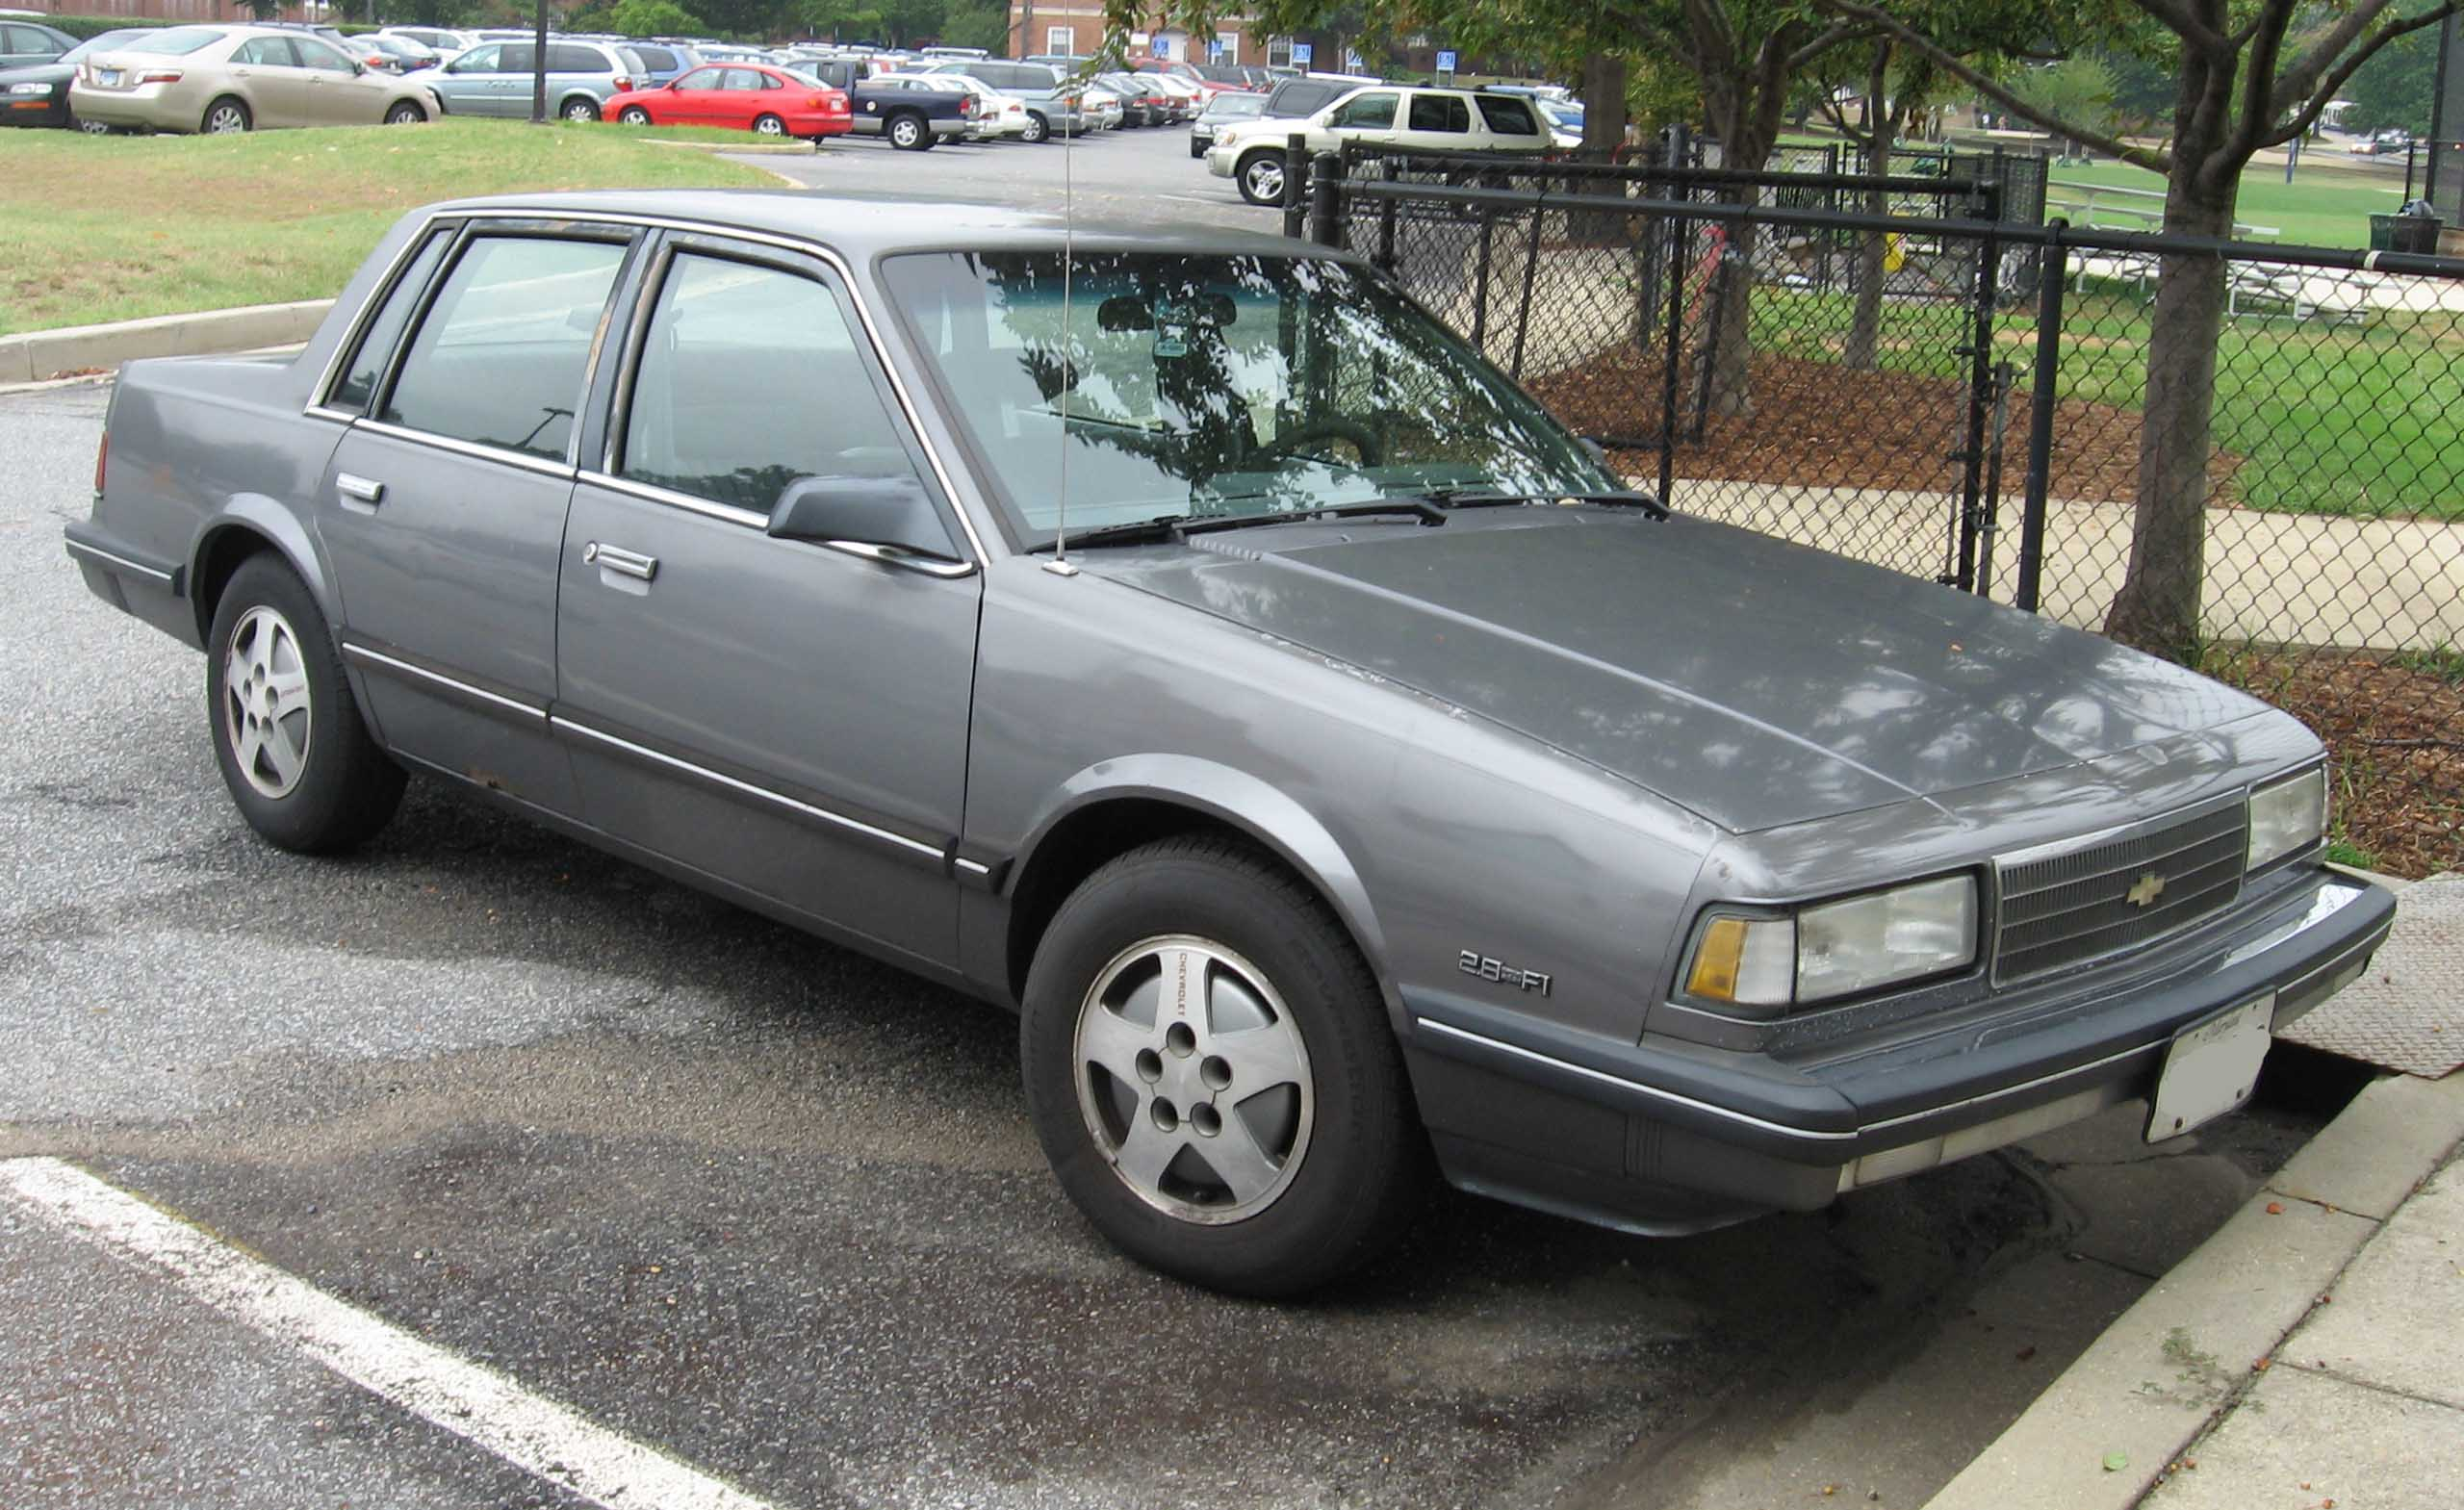 Used Chevrolet Celebrity For Sale - CarGurus